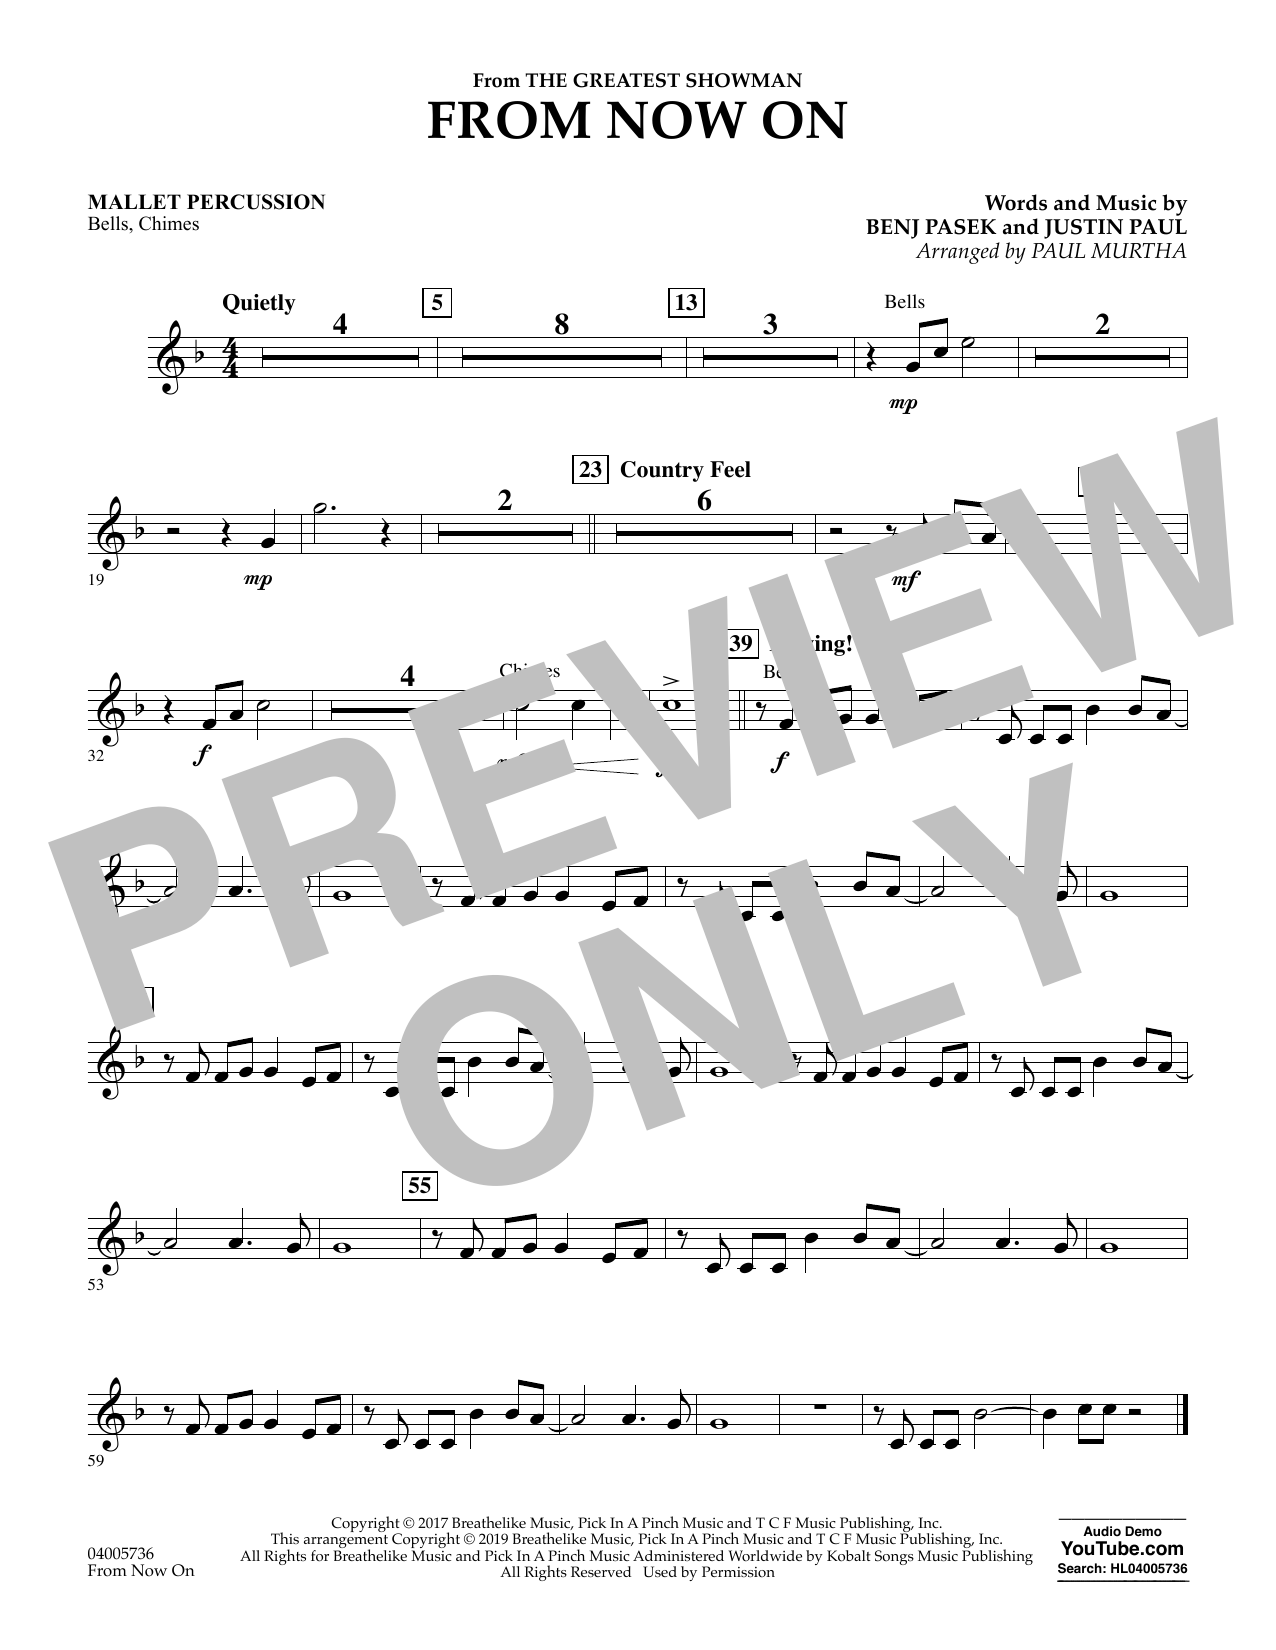 From Now On (from The Greatest Showman) (arr. Paul Murtha) - Mallet Percussion (Concert Band)